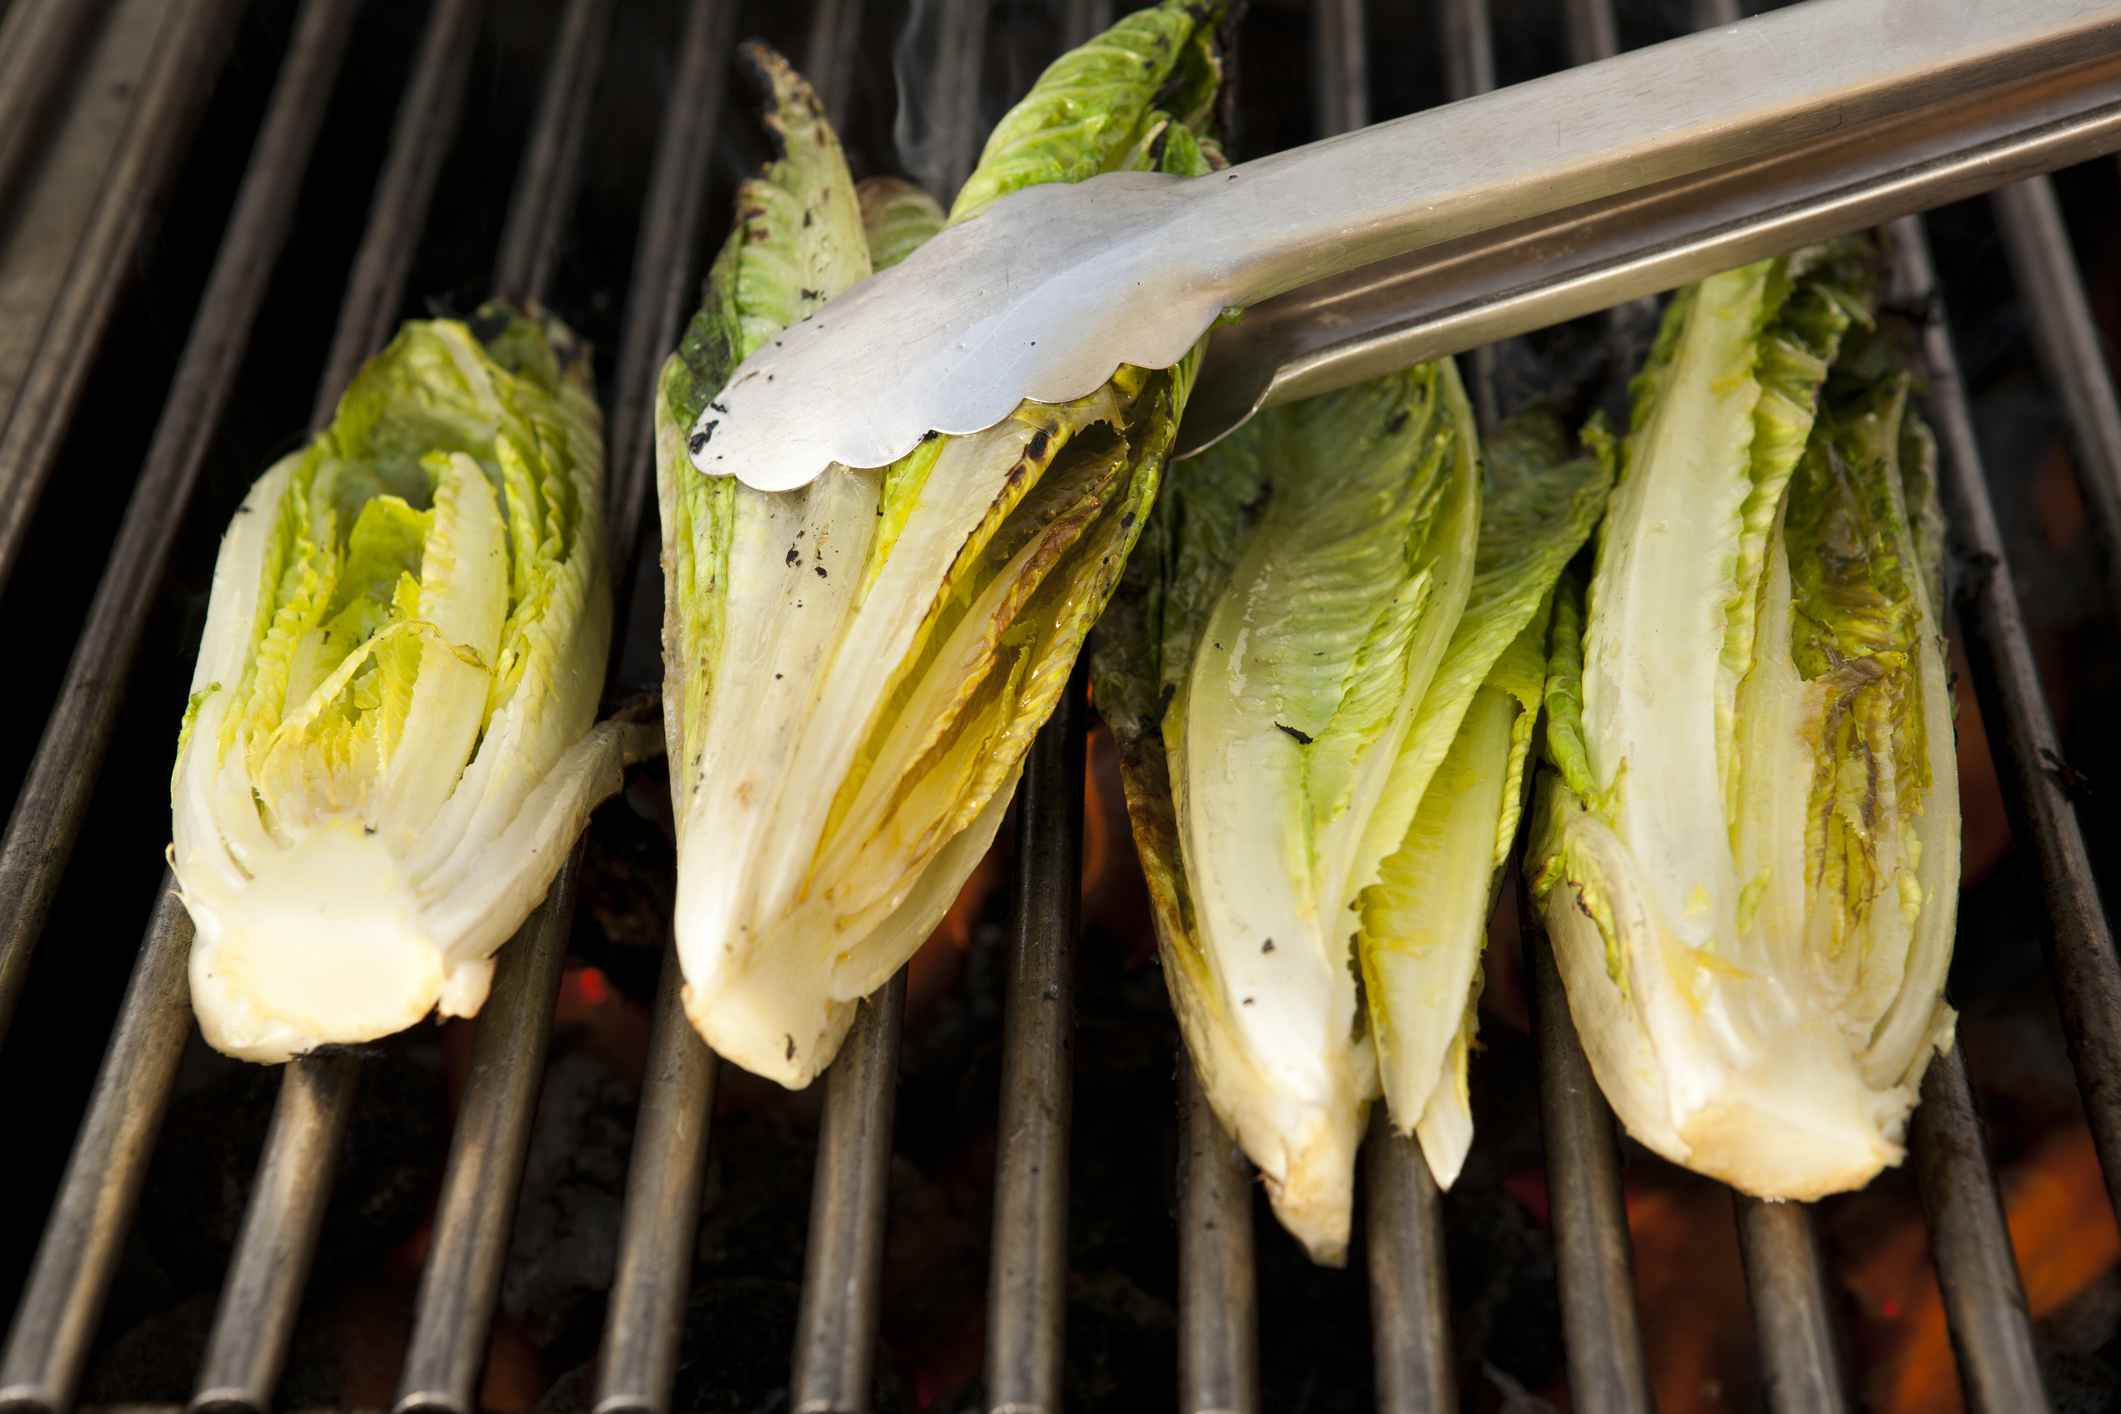 Grilled romaine hearts on a grill